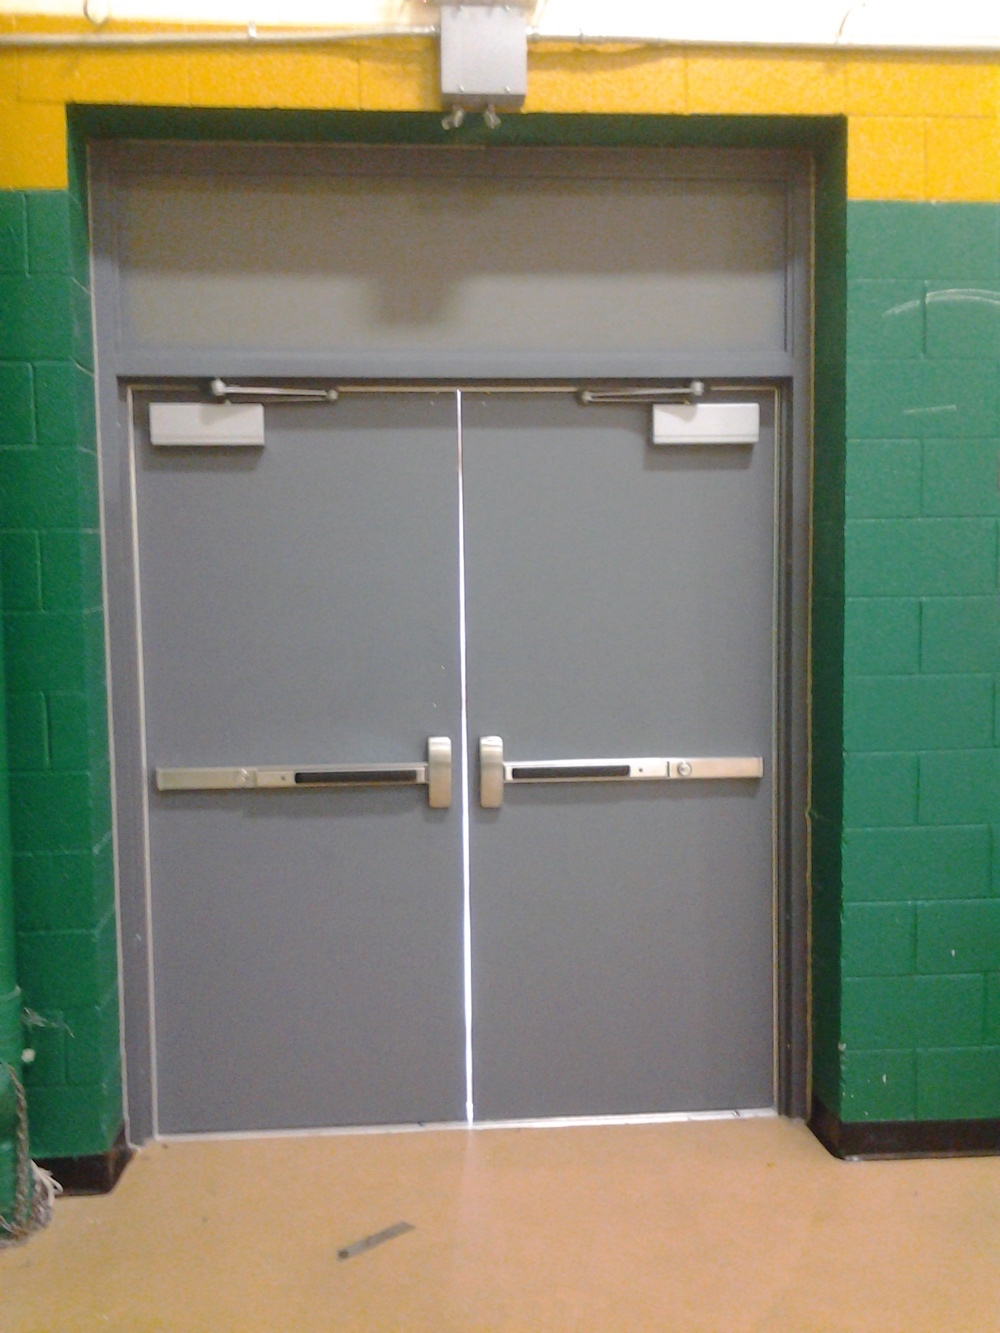 vs cost usd discovered doors inexpensive the profile project inside newark high hollow of school metal frp